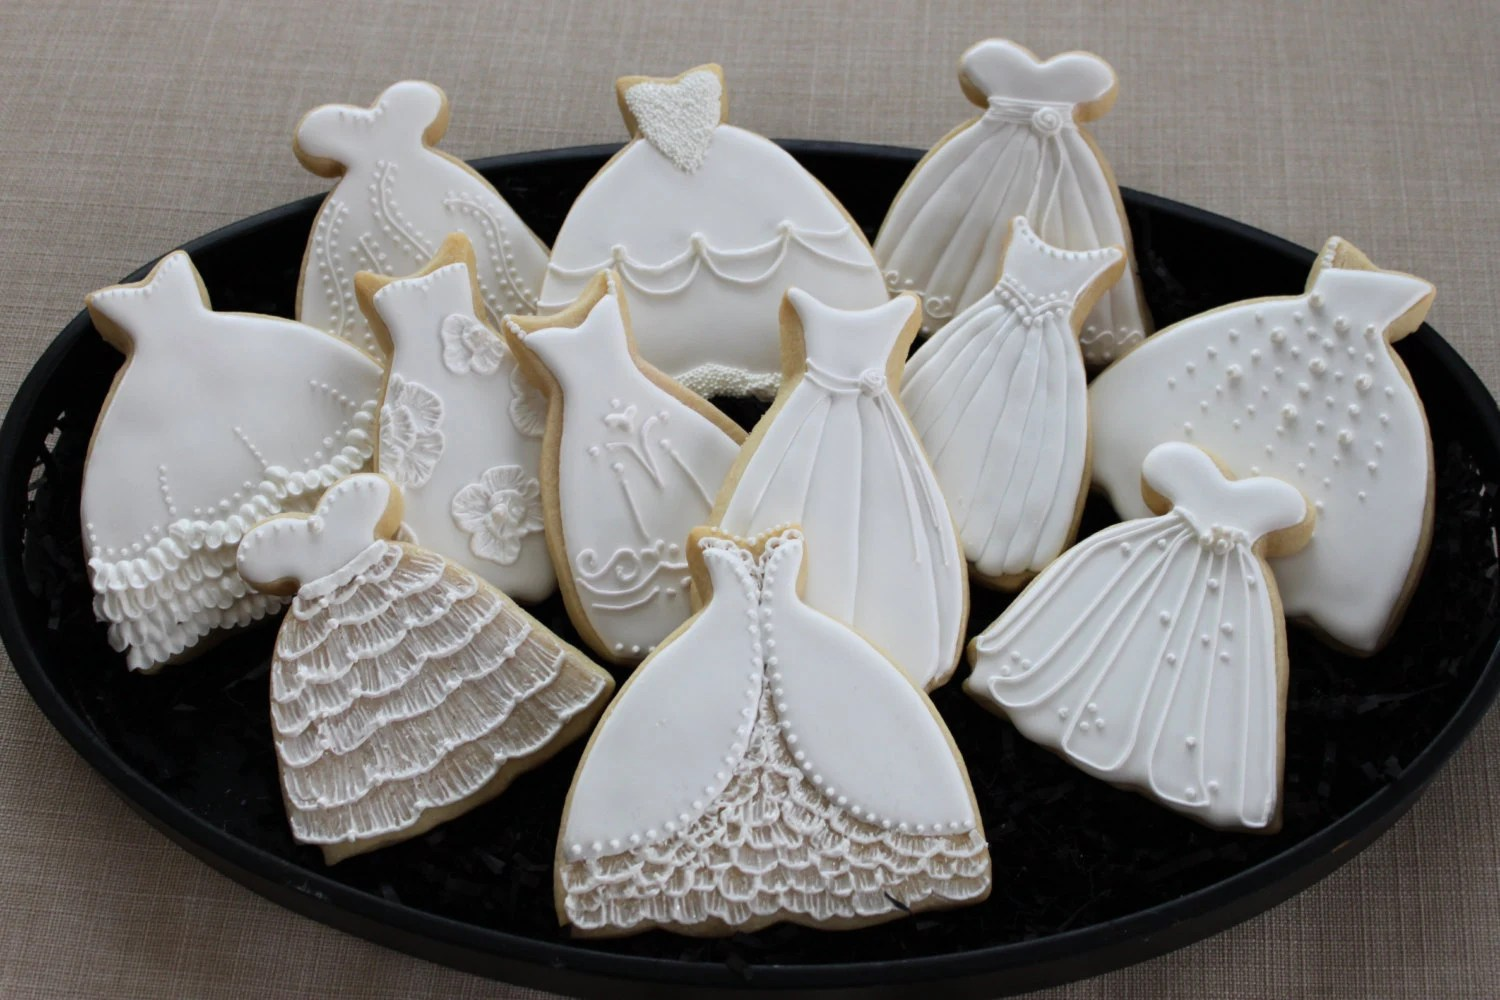 prom cookies wedding dress cookie cutter Wedding dress cookie favors sweet 16 bridal shower prom custom cookie favors princess cookies custom sugar cookies bridal luncheon